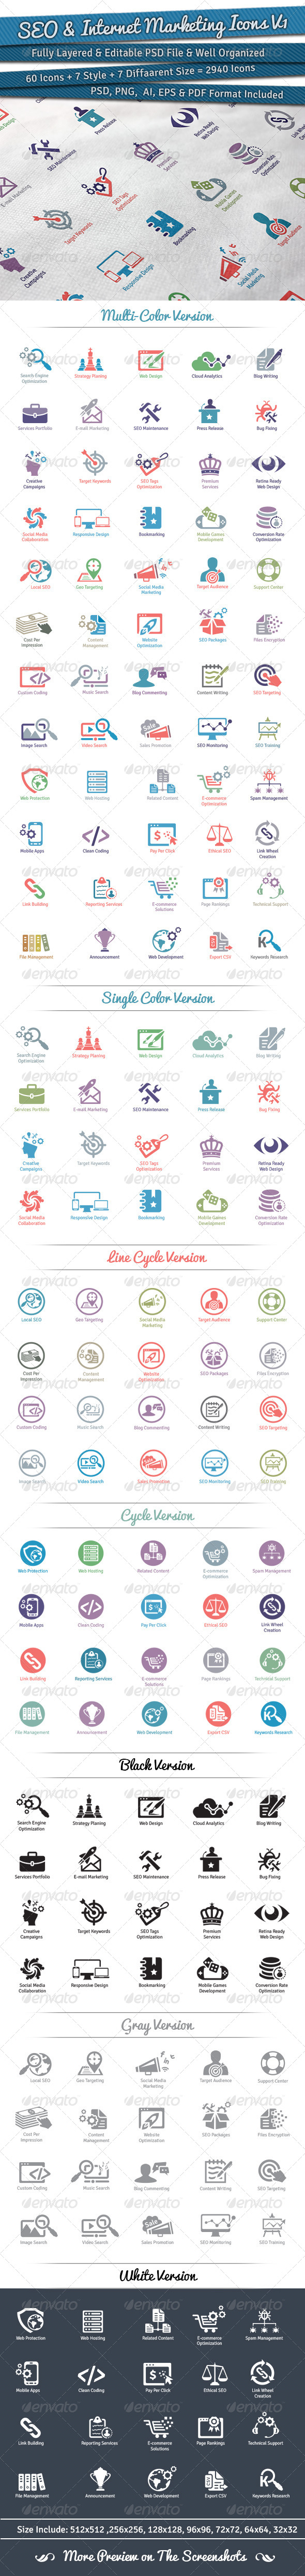 GraphicRiver 60 SEO & Internet Marketing Icons Volume 1 5530809